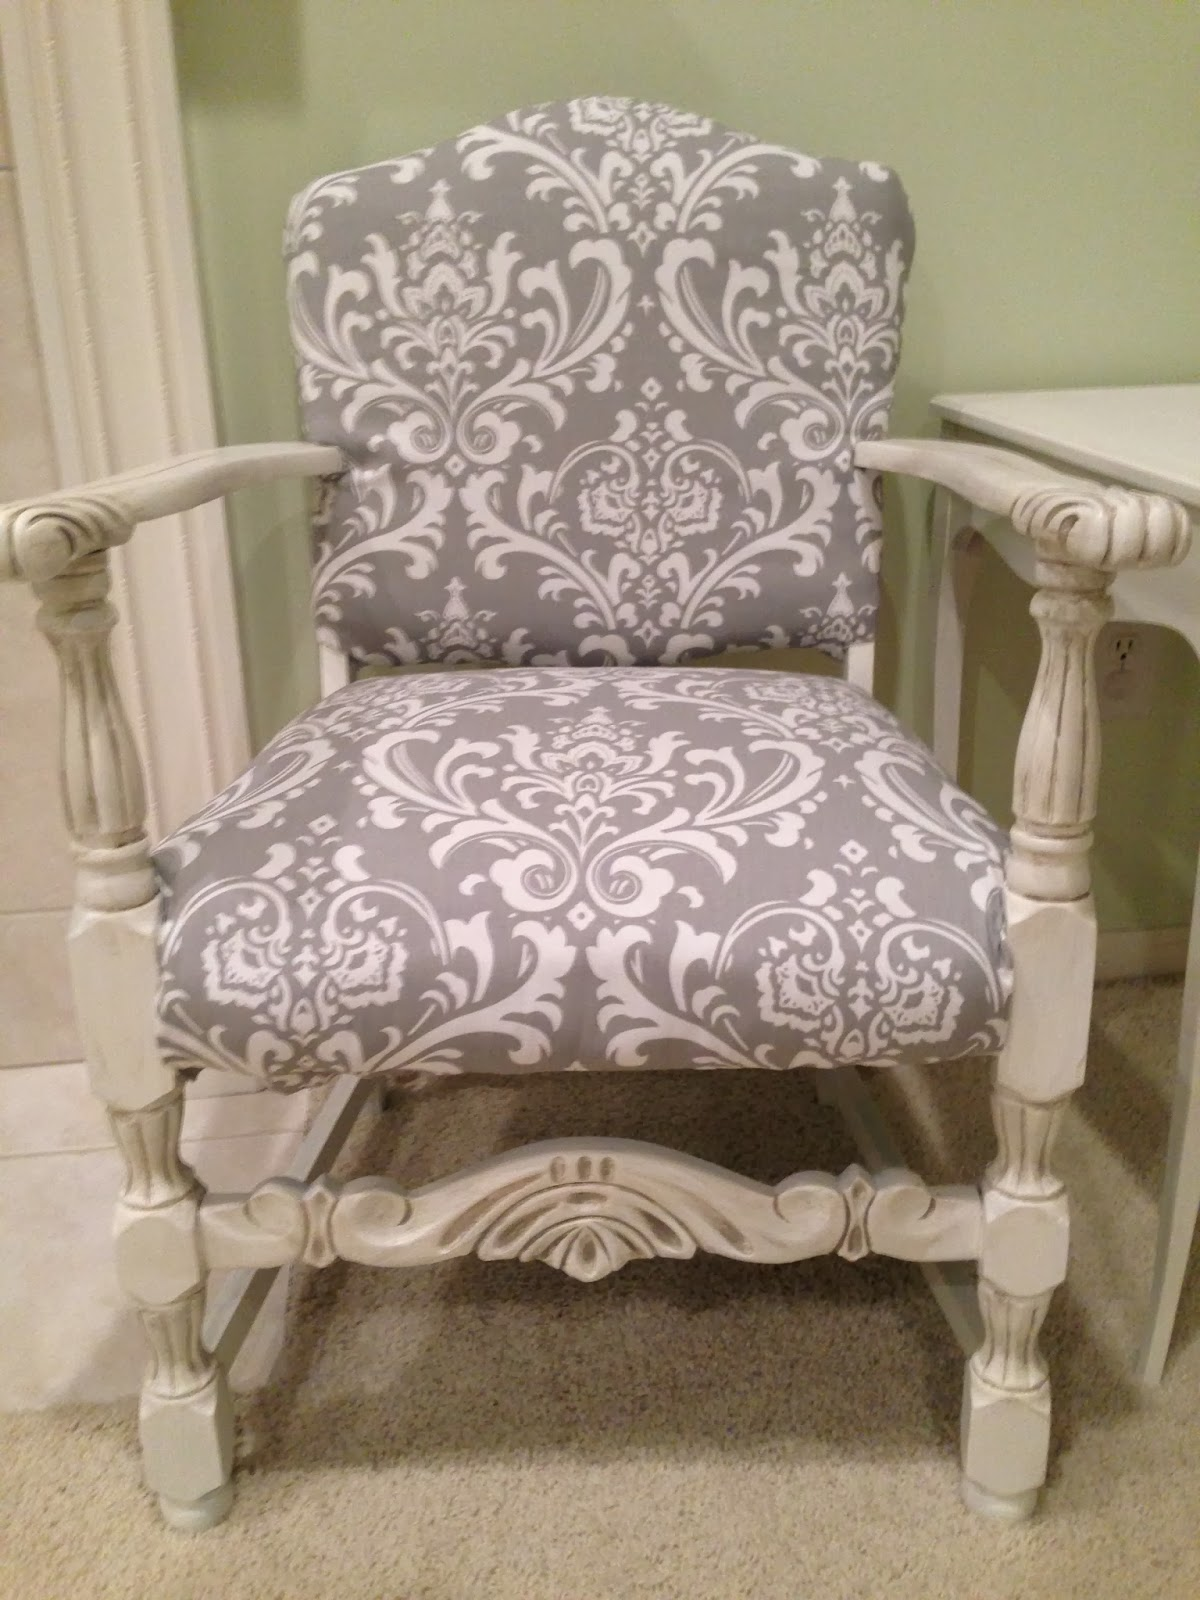 grey upholstered chair covers for the classroom link party 128 refurbished furniture and features